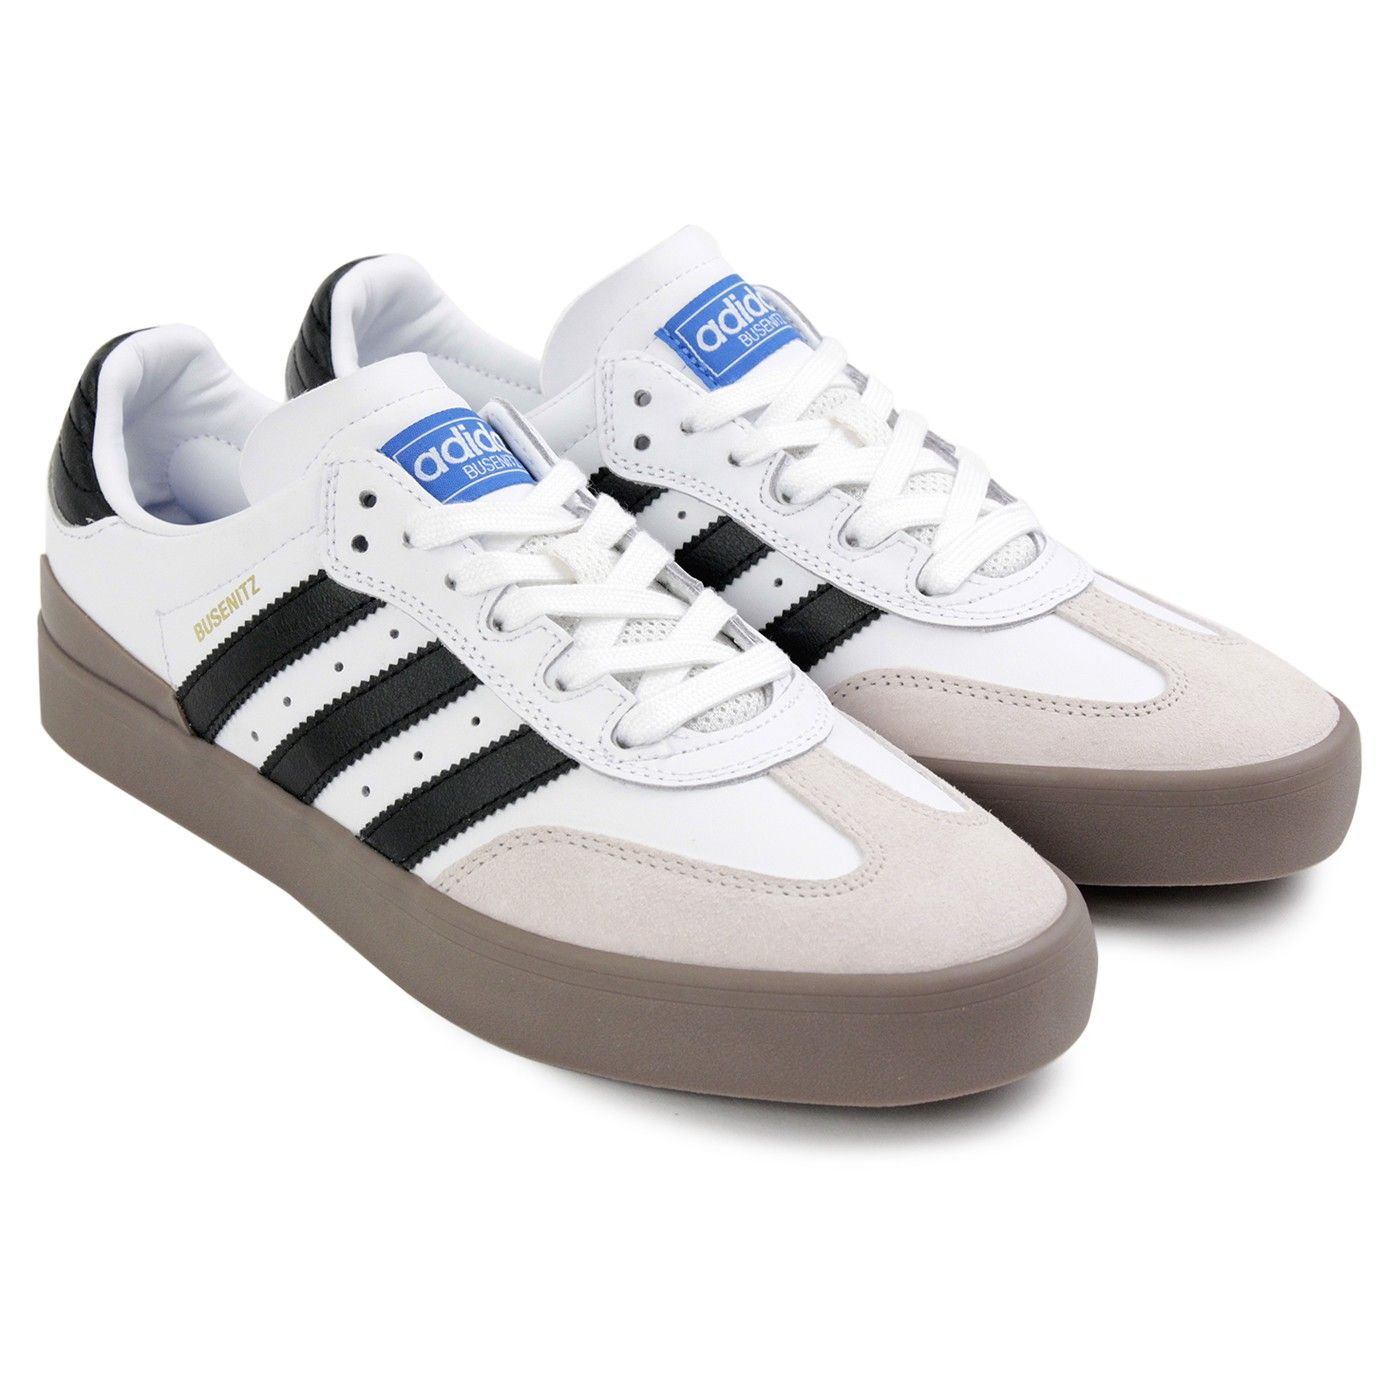 best sneakers 8c4e4 913a0 Busenitz Vulc Samba Shoes in White   Core Black   Bluebird by Adidas